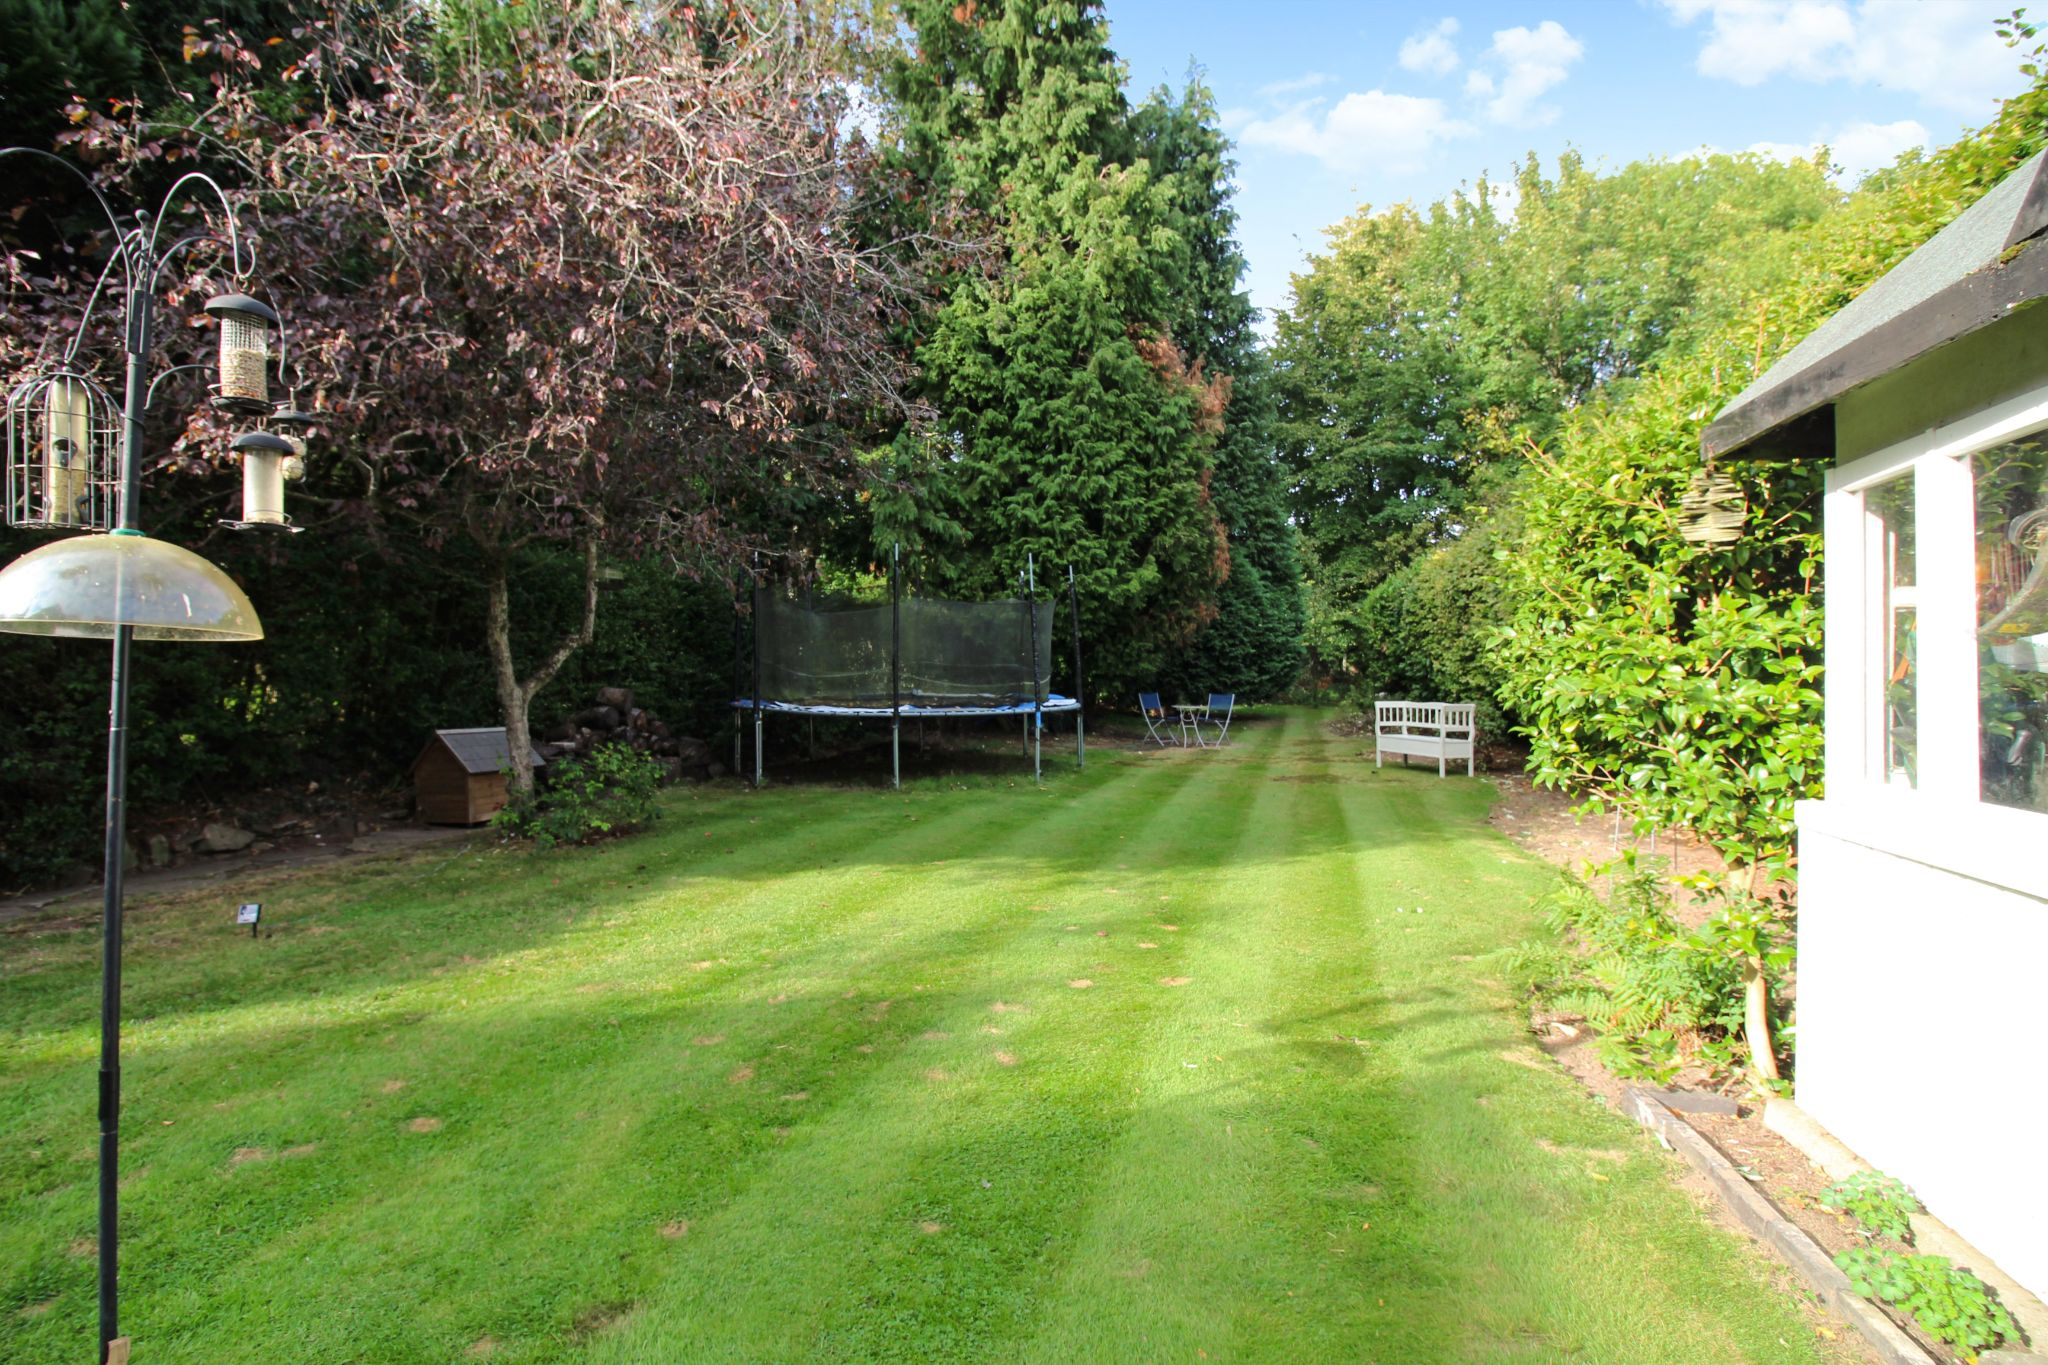 5 bedroom detached house For Sale in Solihull - Photograph 6.